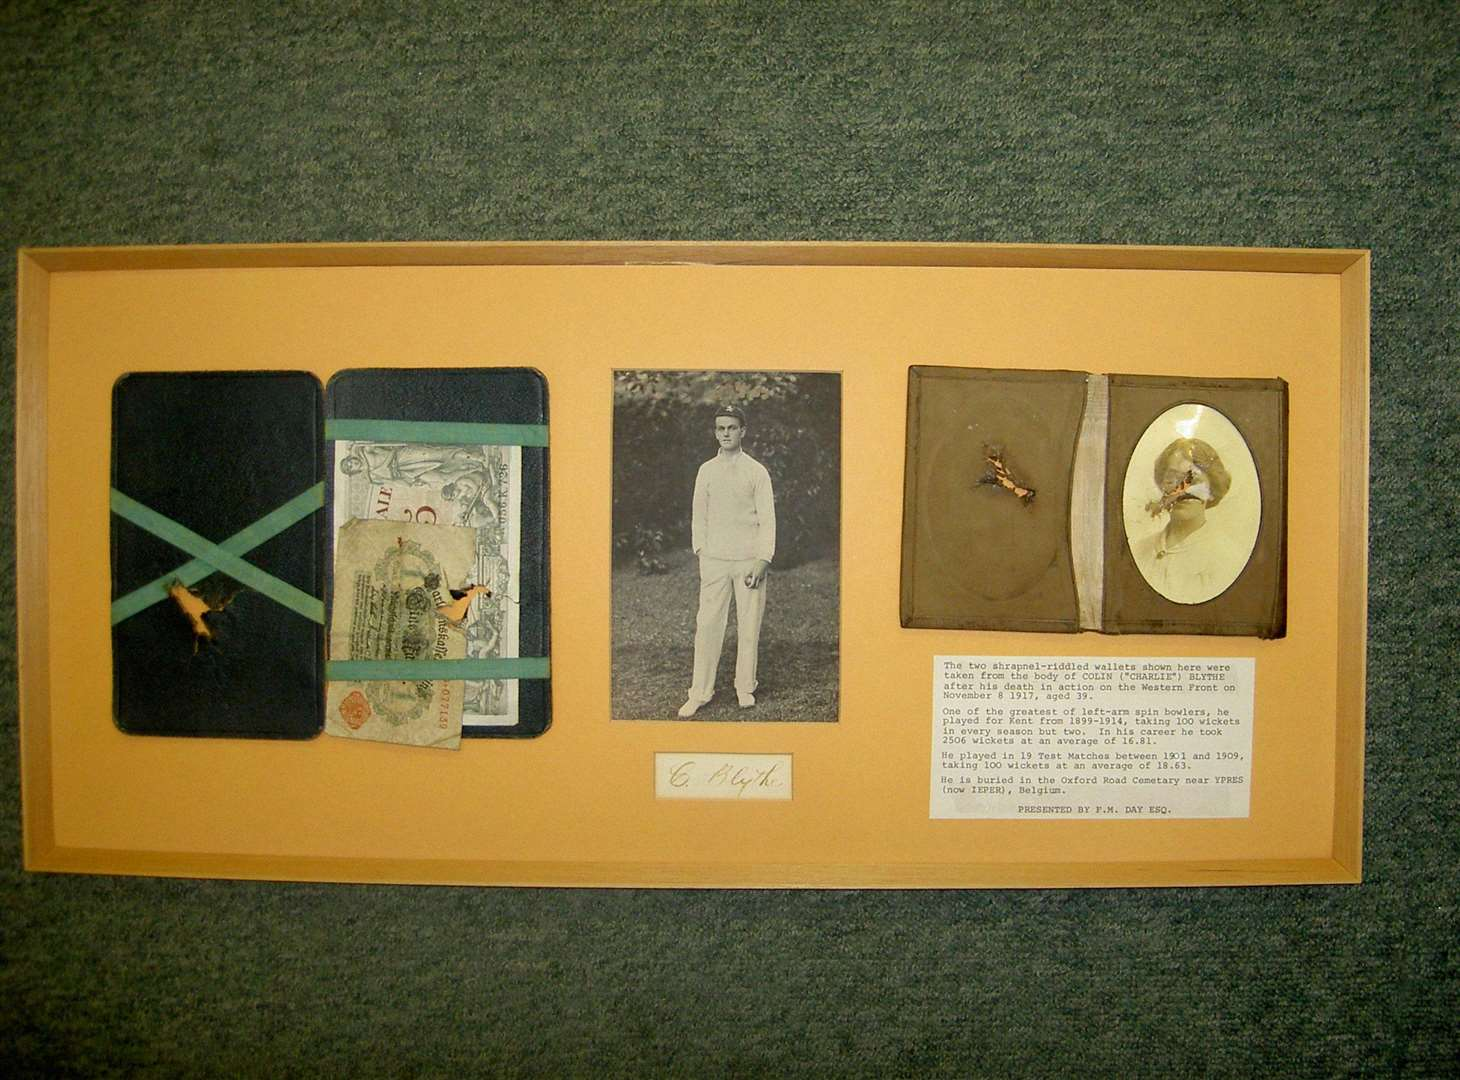 Colin Blythe's wallets which were pierced by shrapnel when he was killed